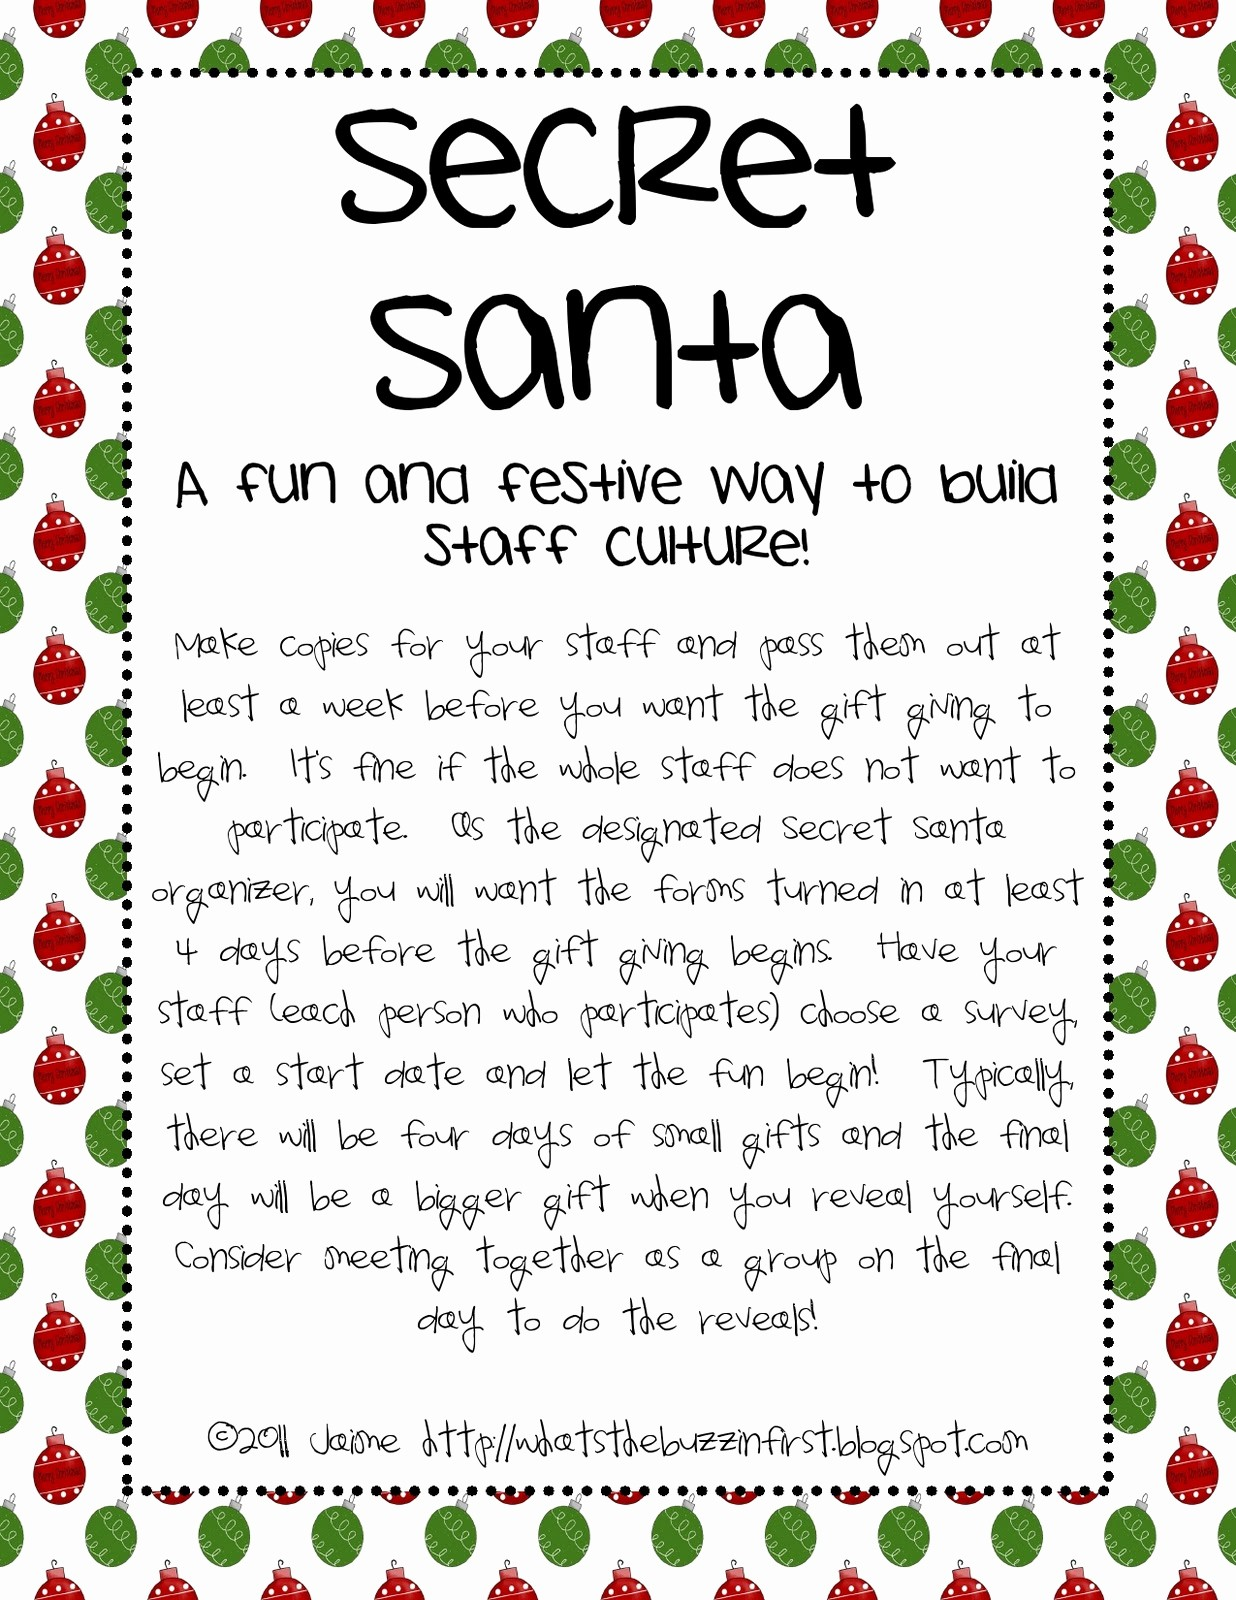 Secret Santa List for Work Awesome What S the Buzz In First December 2011